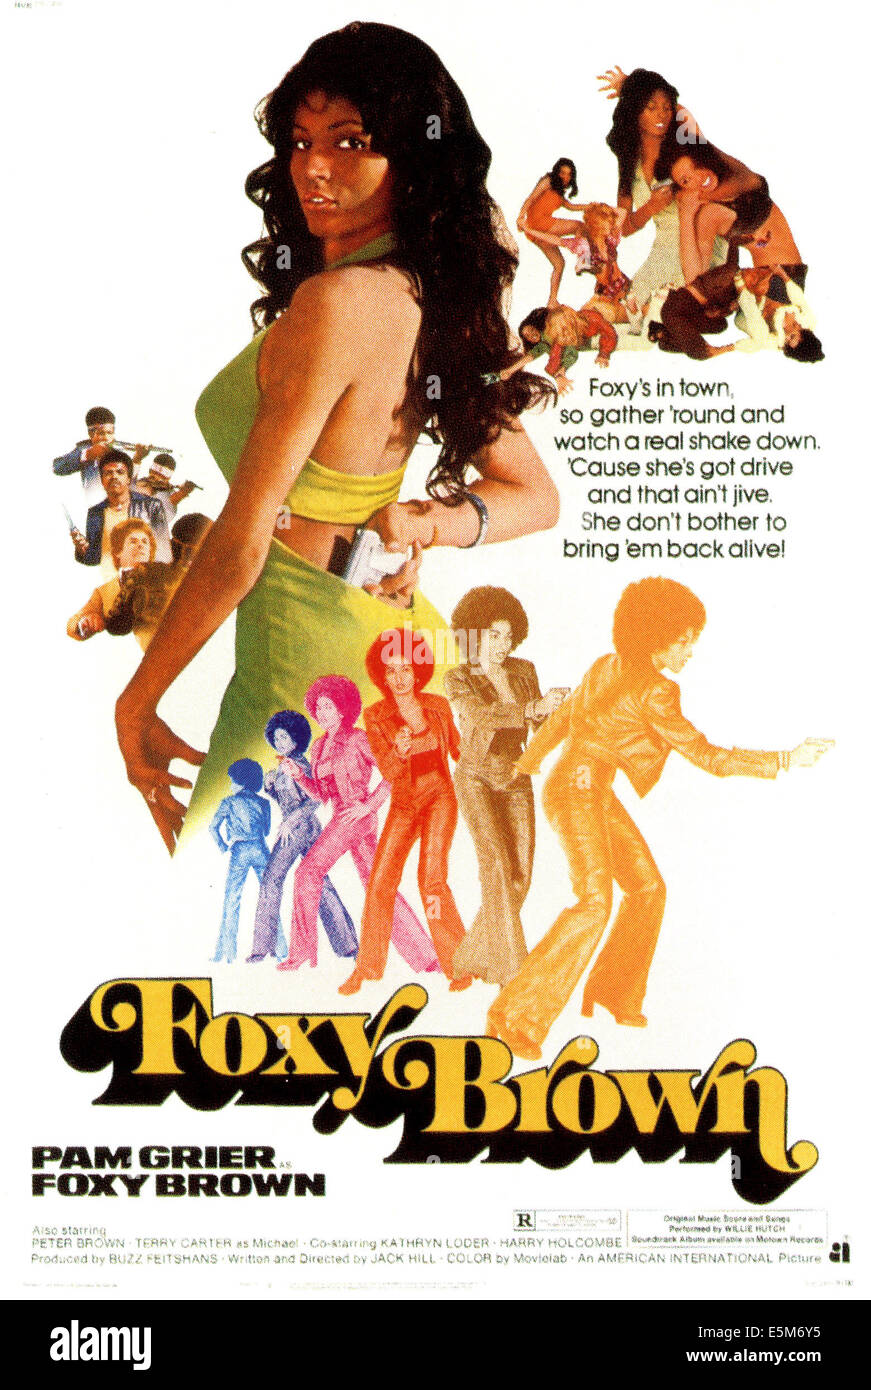 FOXY BROWN, Pam Grier, 1974. - Stock Image